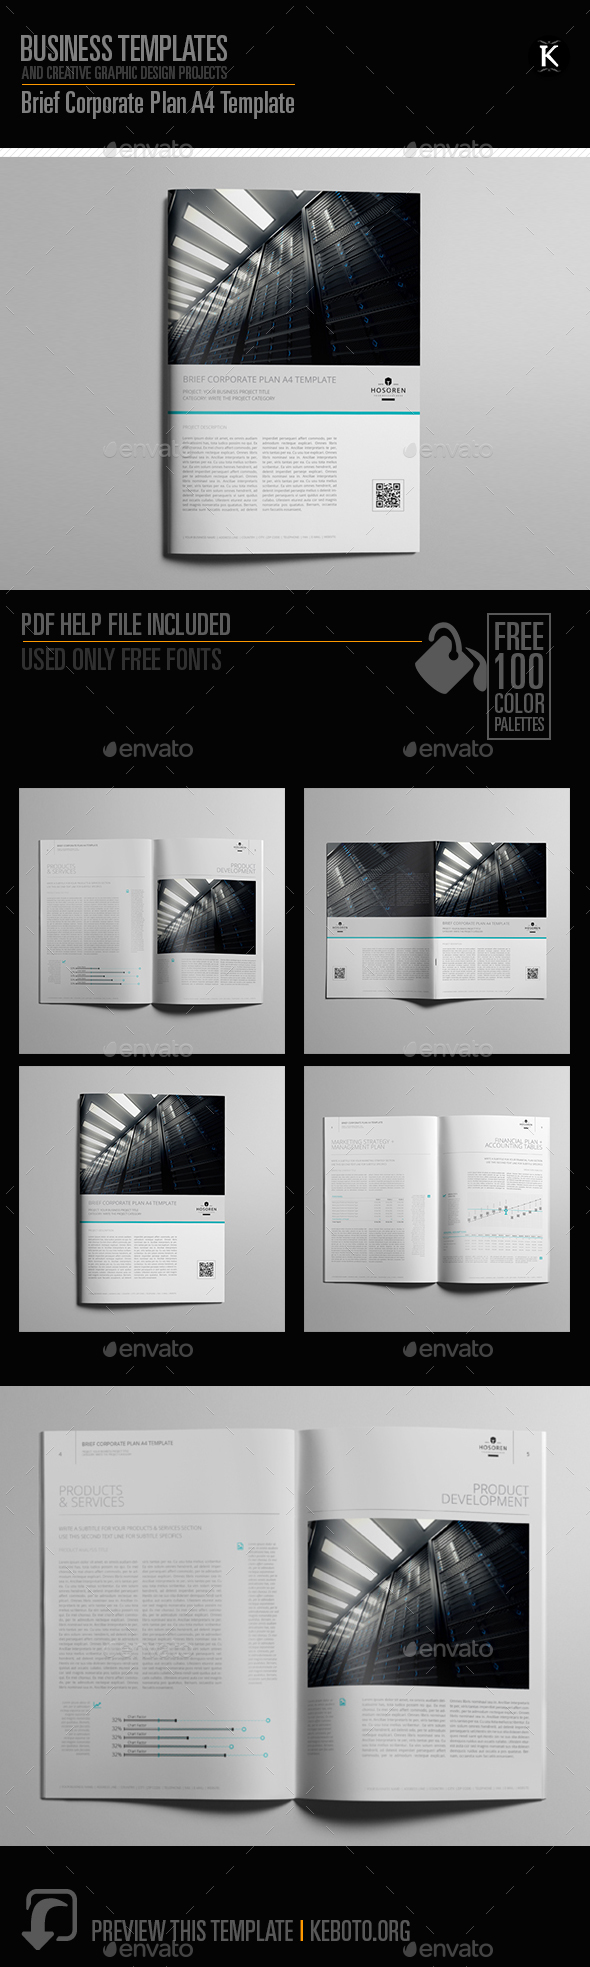 Brief Corporate Plan A4 Template - Miscellaneous Print Templates